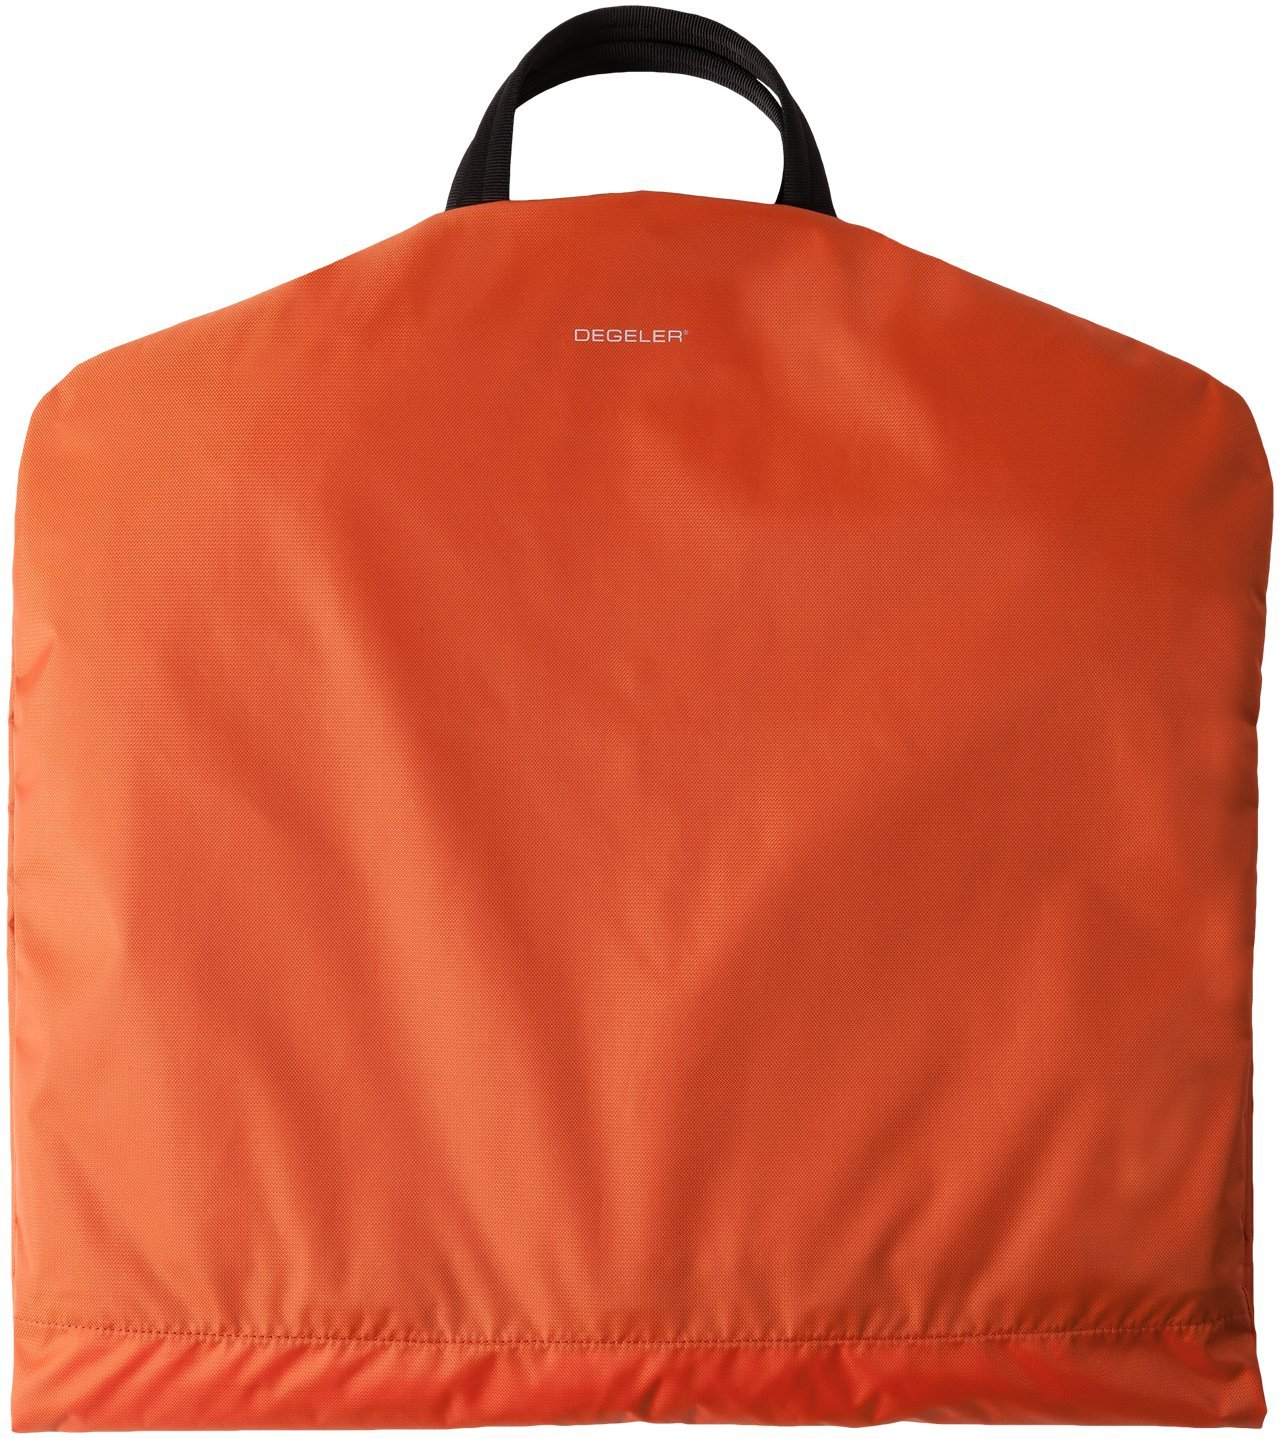 Travel Garment Bag with Titanium Hanger - Crafted from Ultralight, Water-Resistant High End Velocity Nylon Fabrics To Create An Effortless 6 Pocket Luggage Carrier (Orange) by DEGELER